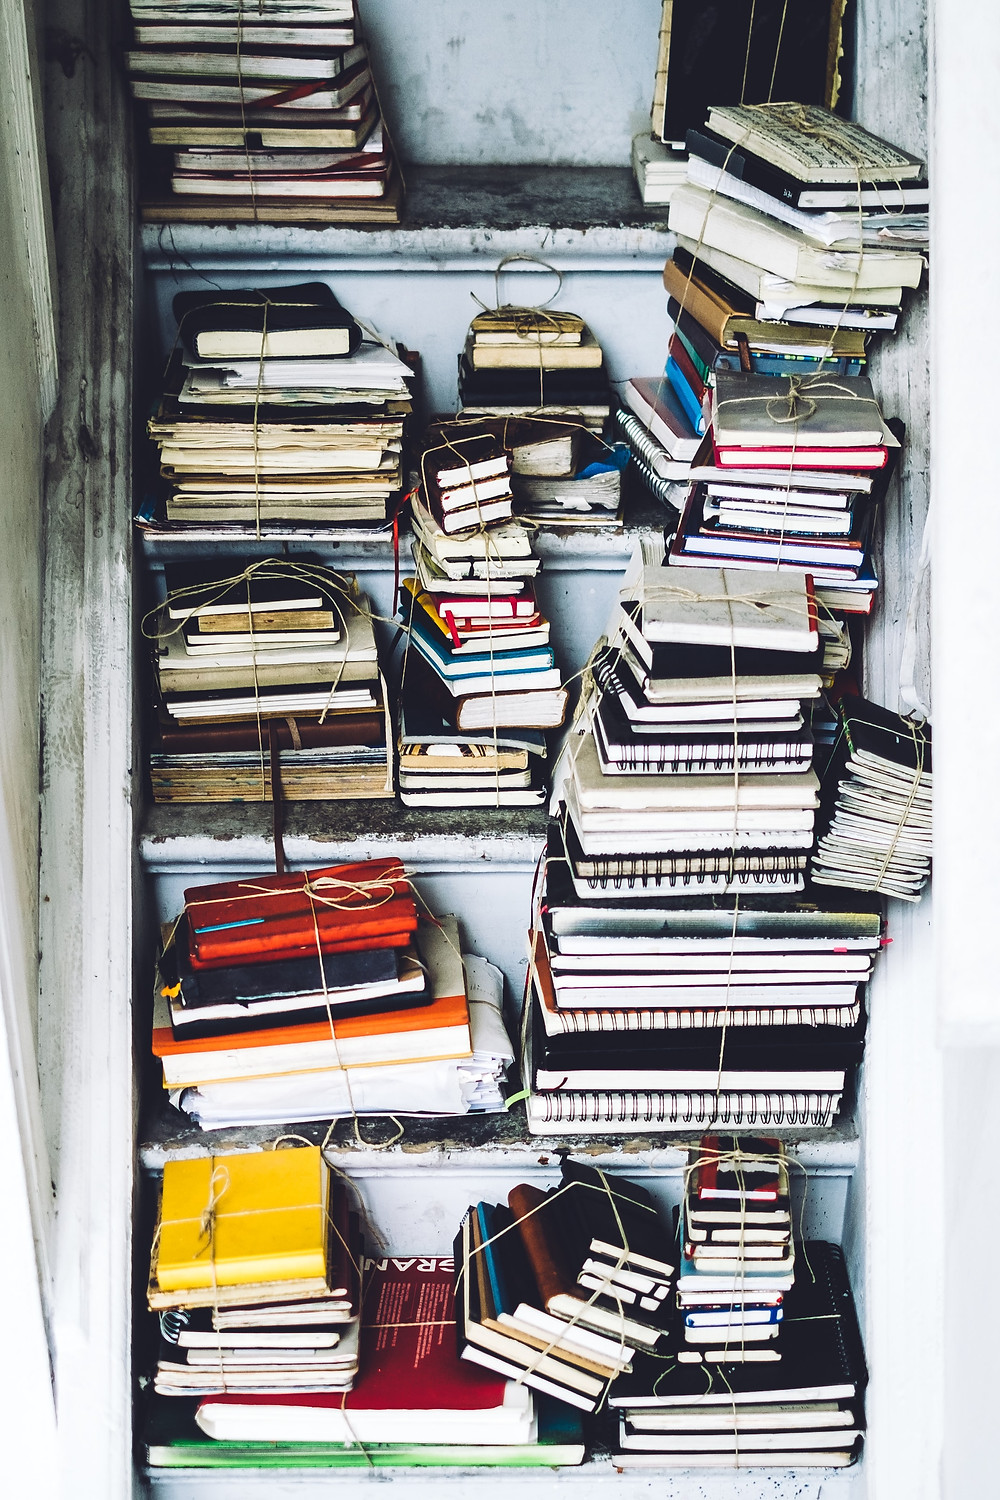 Piles of Books, Manuscripts, Docs for Research